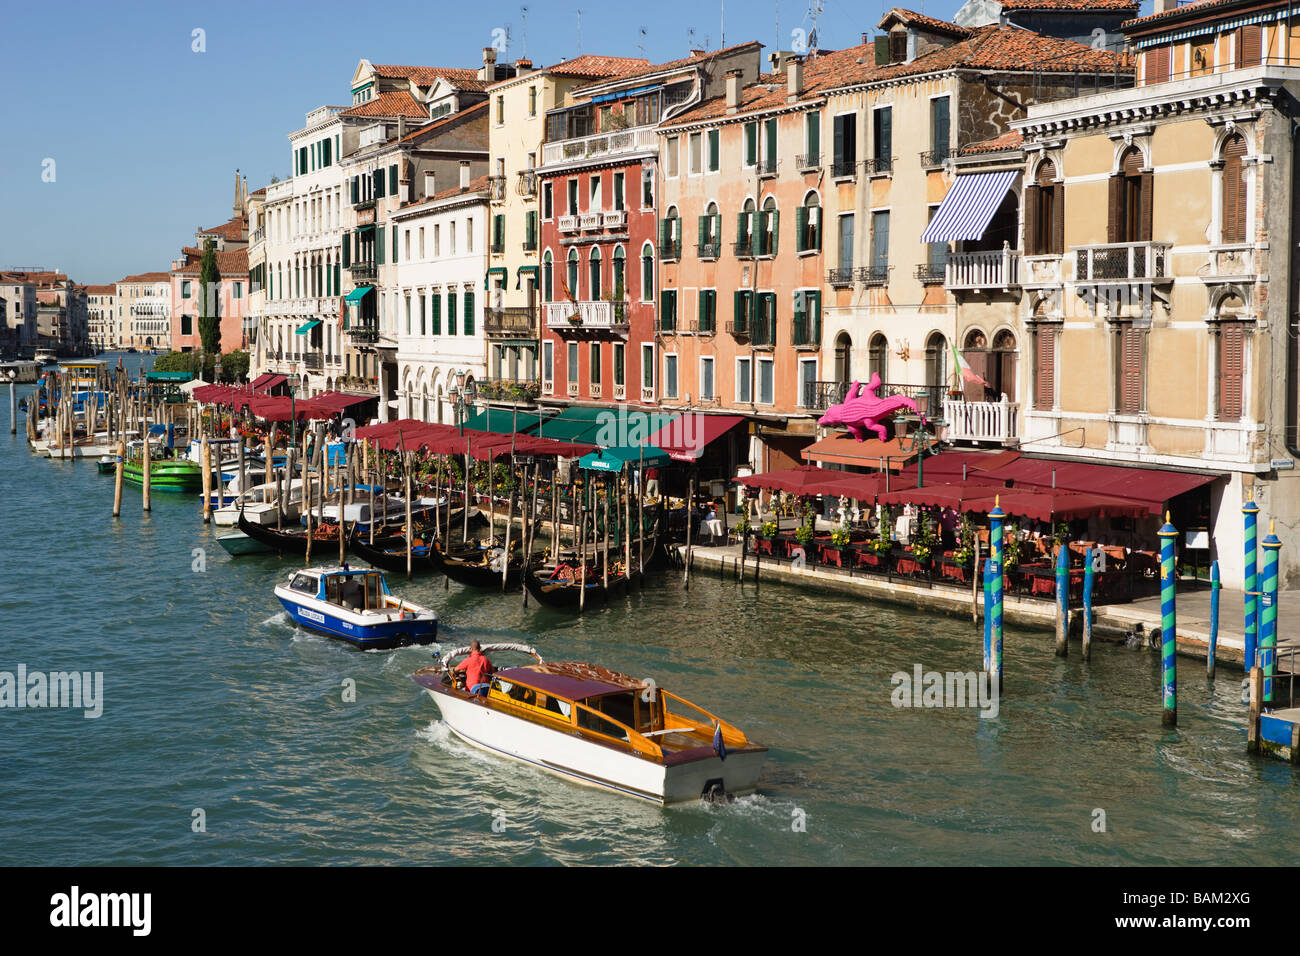 Grand canal in venice - Stock Image